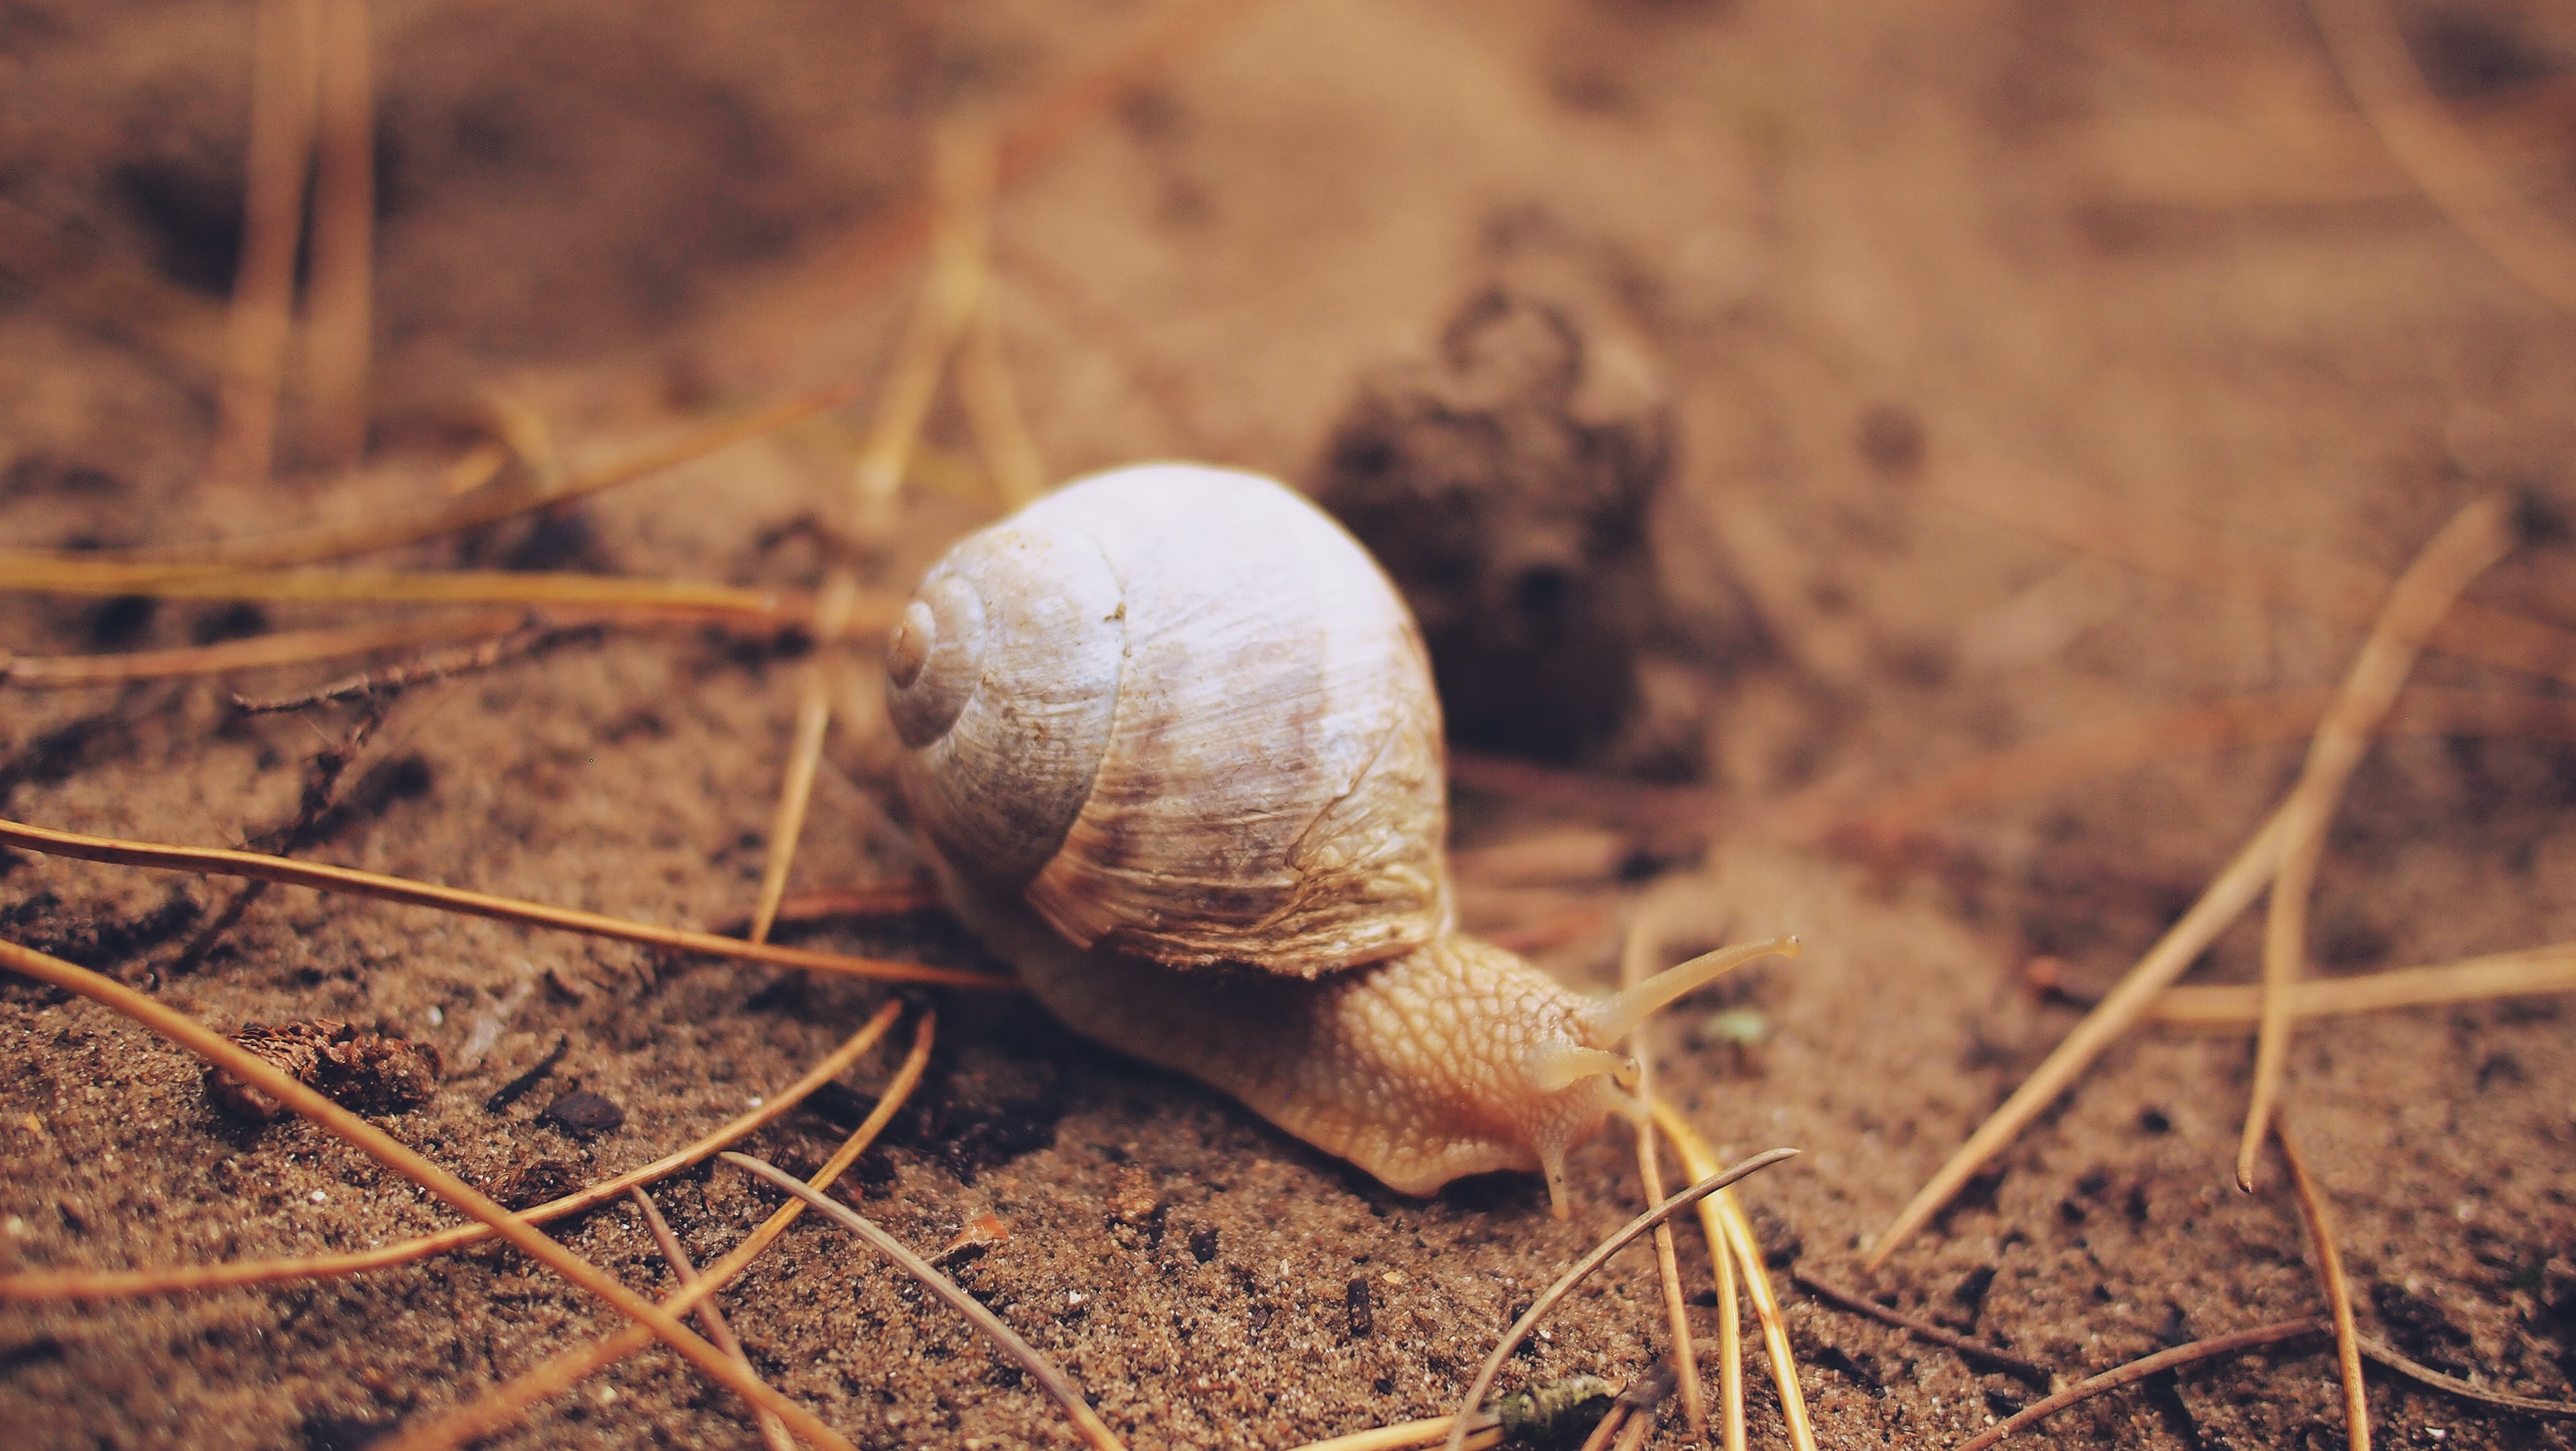 Snail crawling over the ground by some dead grass